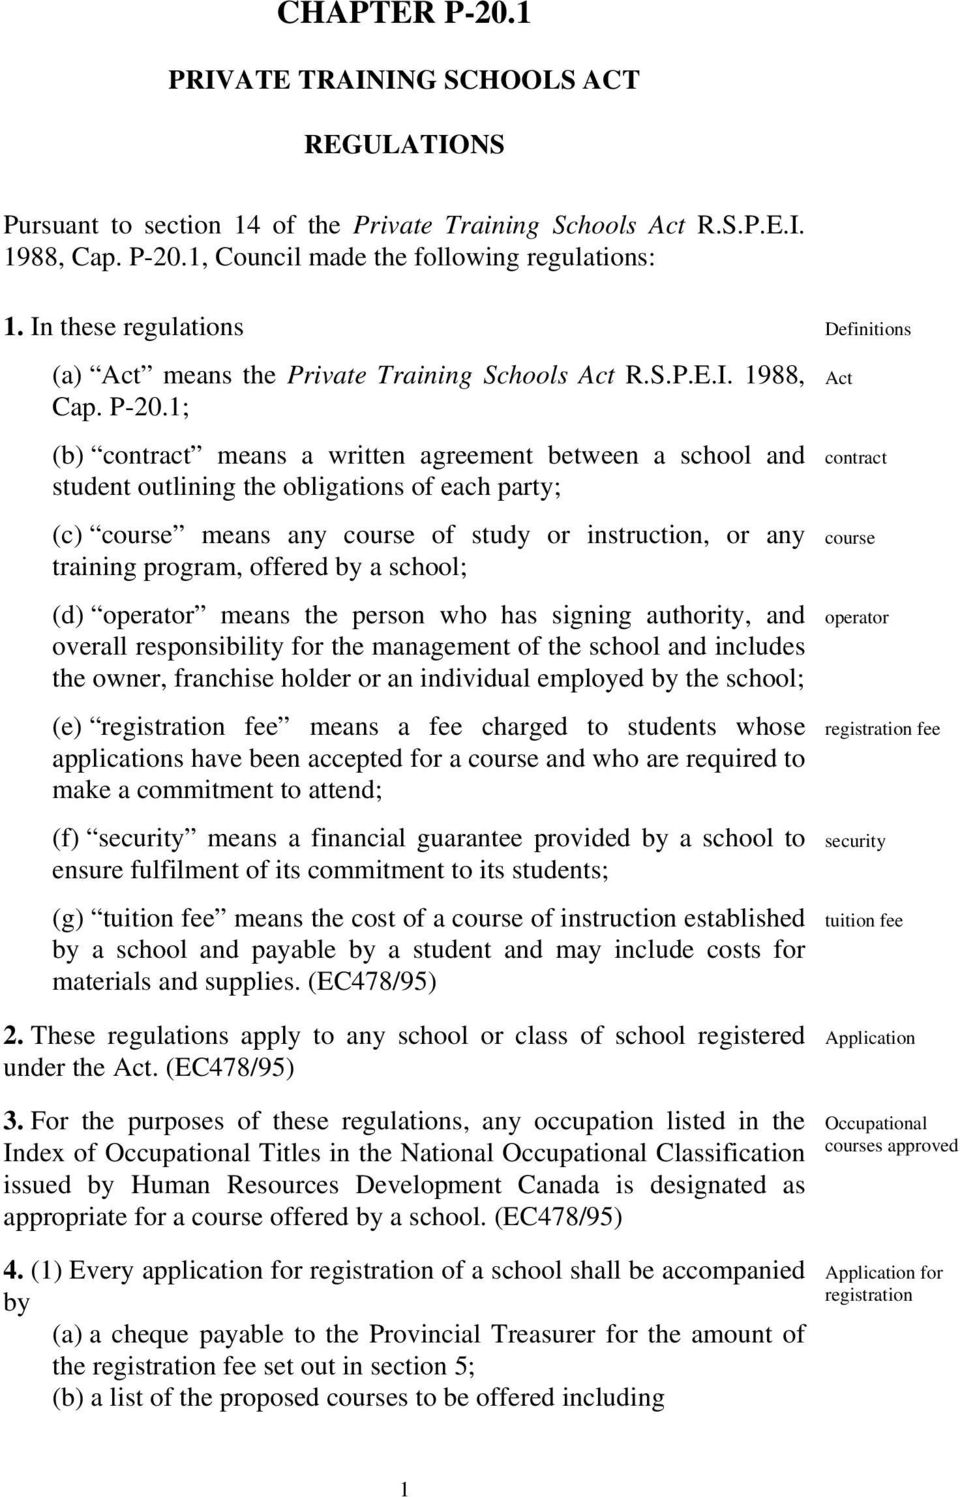 1; (b) contract means a written agreement between a school and student outlining the obligations of each party; (c) course means any course of study or instruction, or any training program, offered